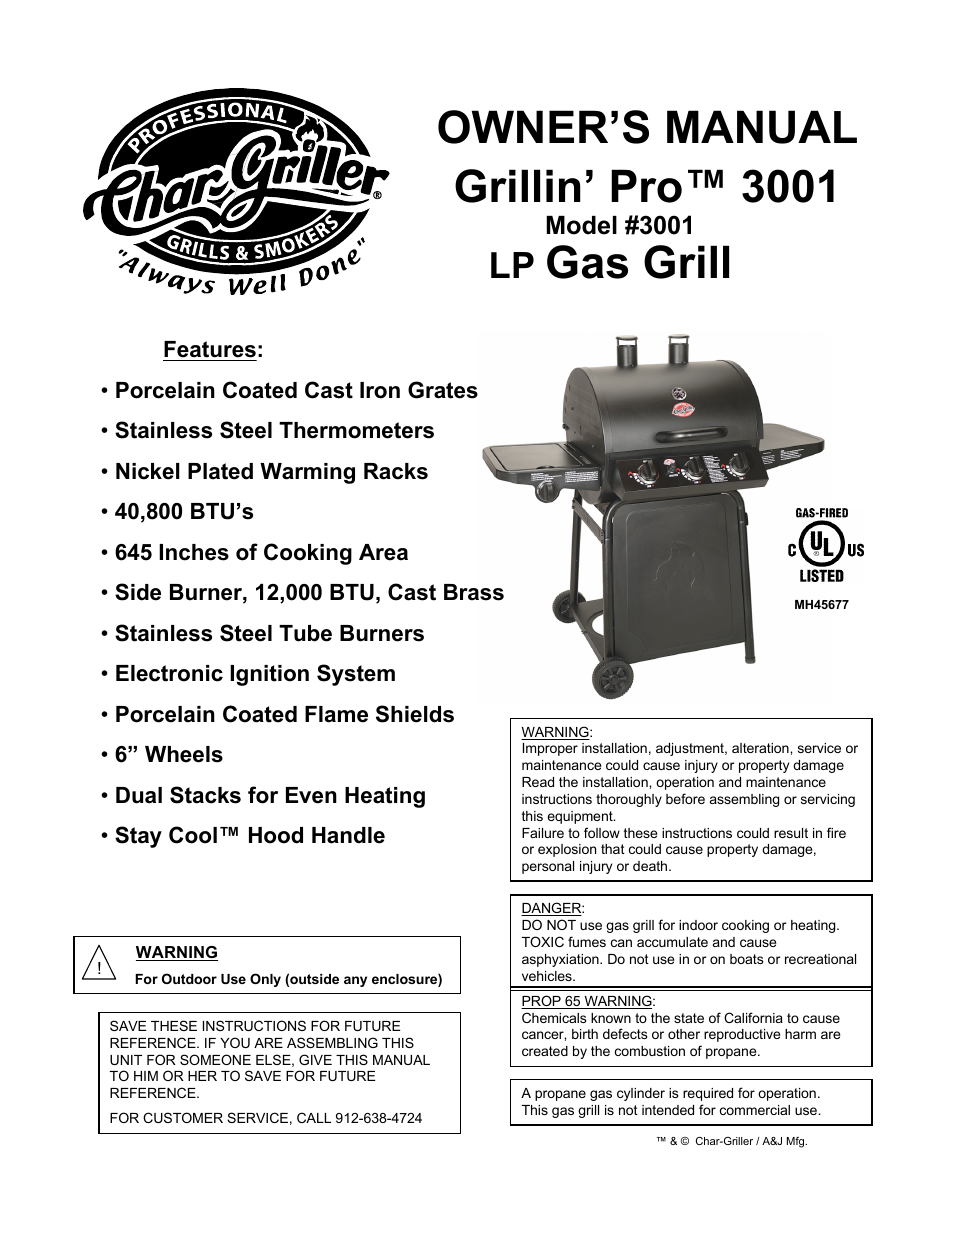 char griller lp gas grill grillin pro 3001 user manual